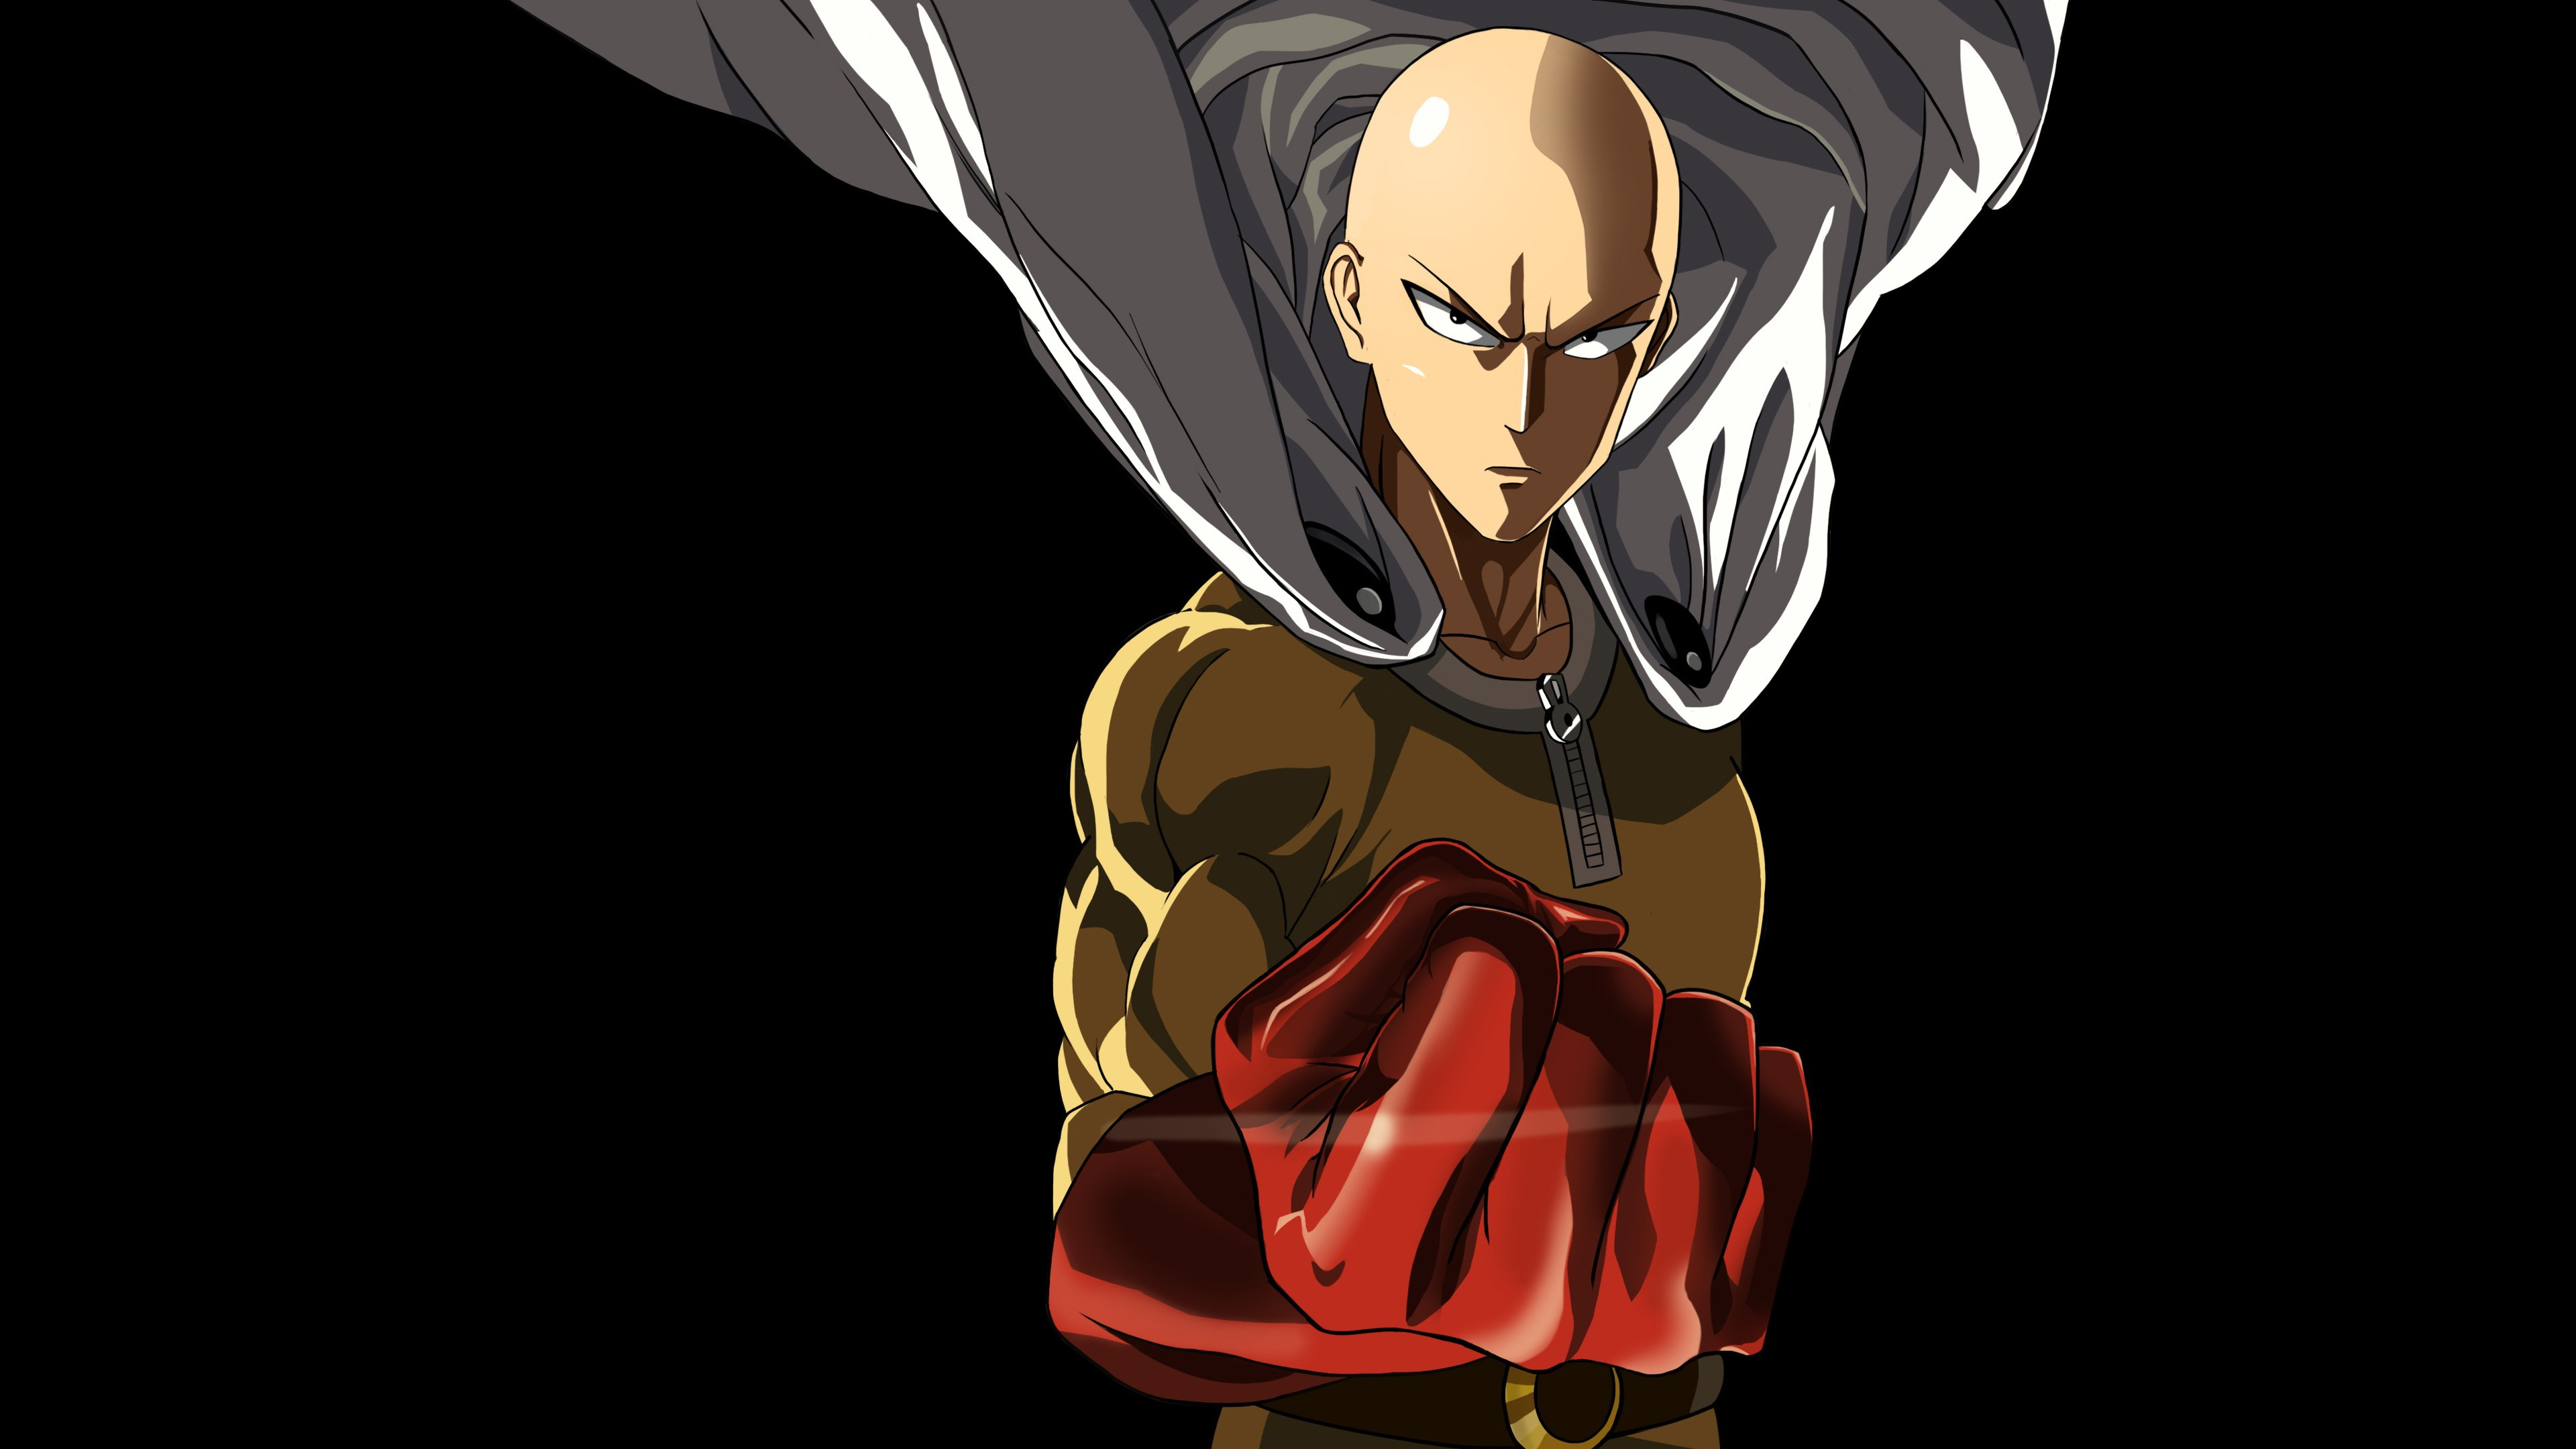 One Punch Man Wallpaper 4K - WallpaperSafari